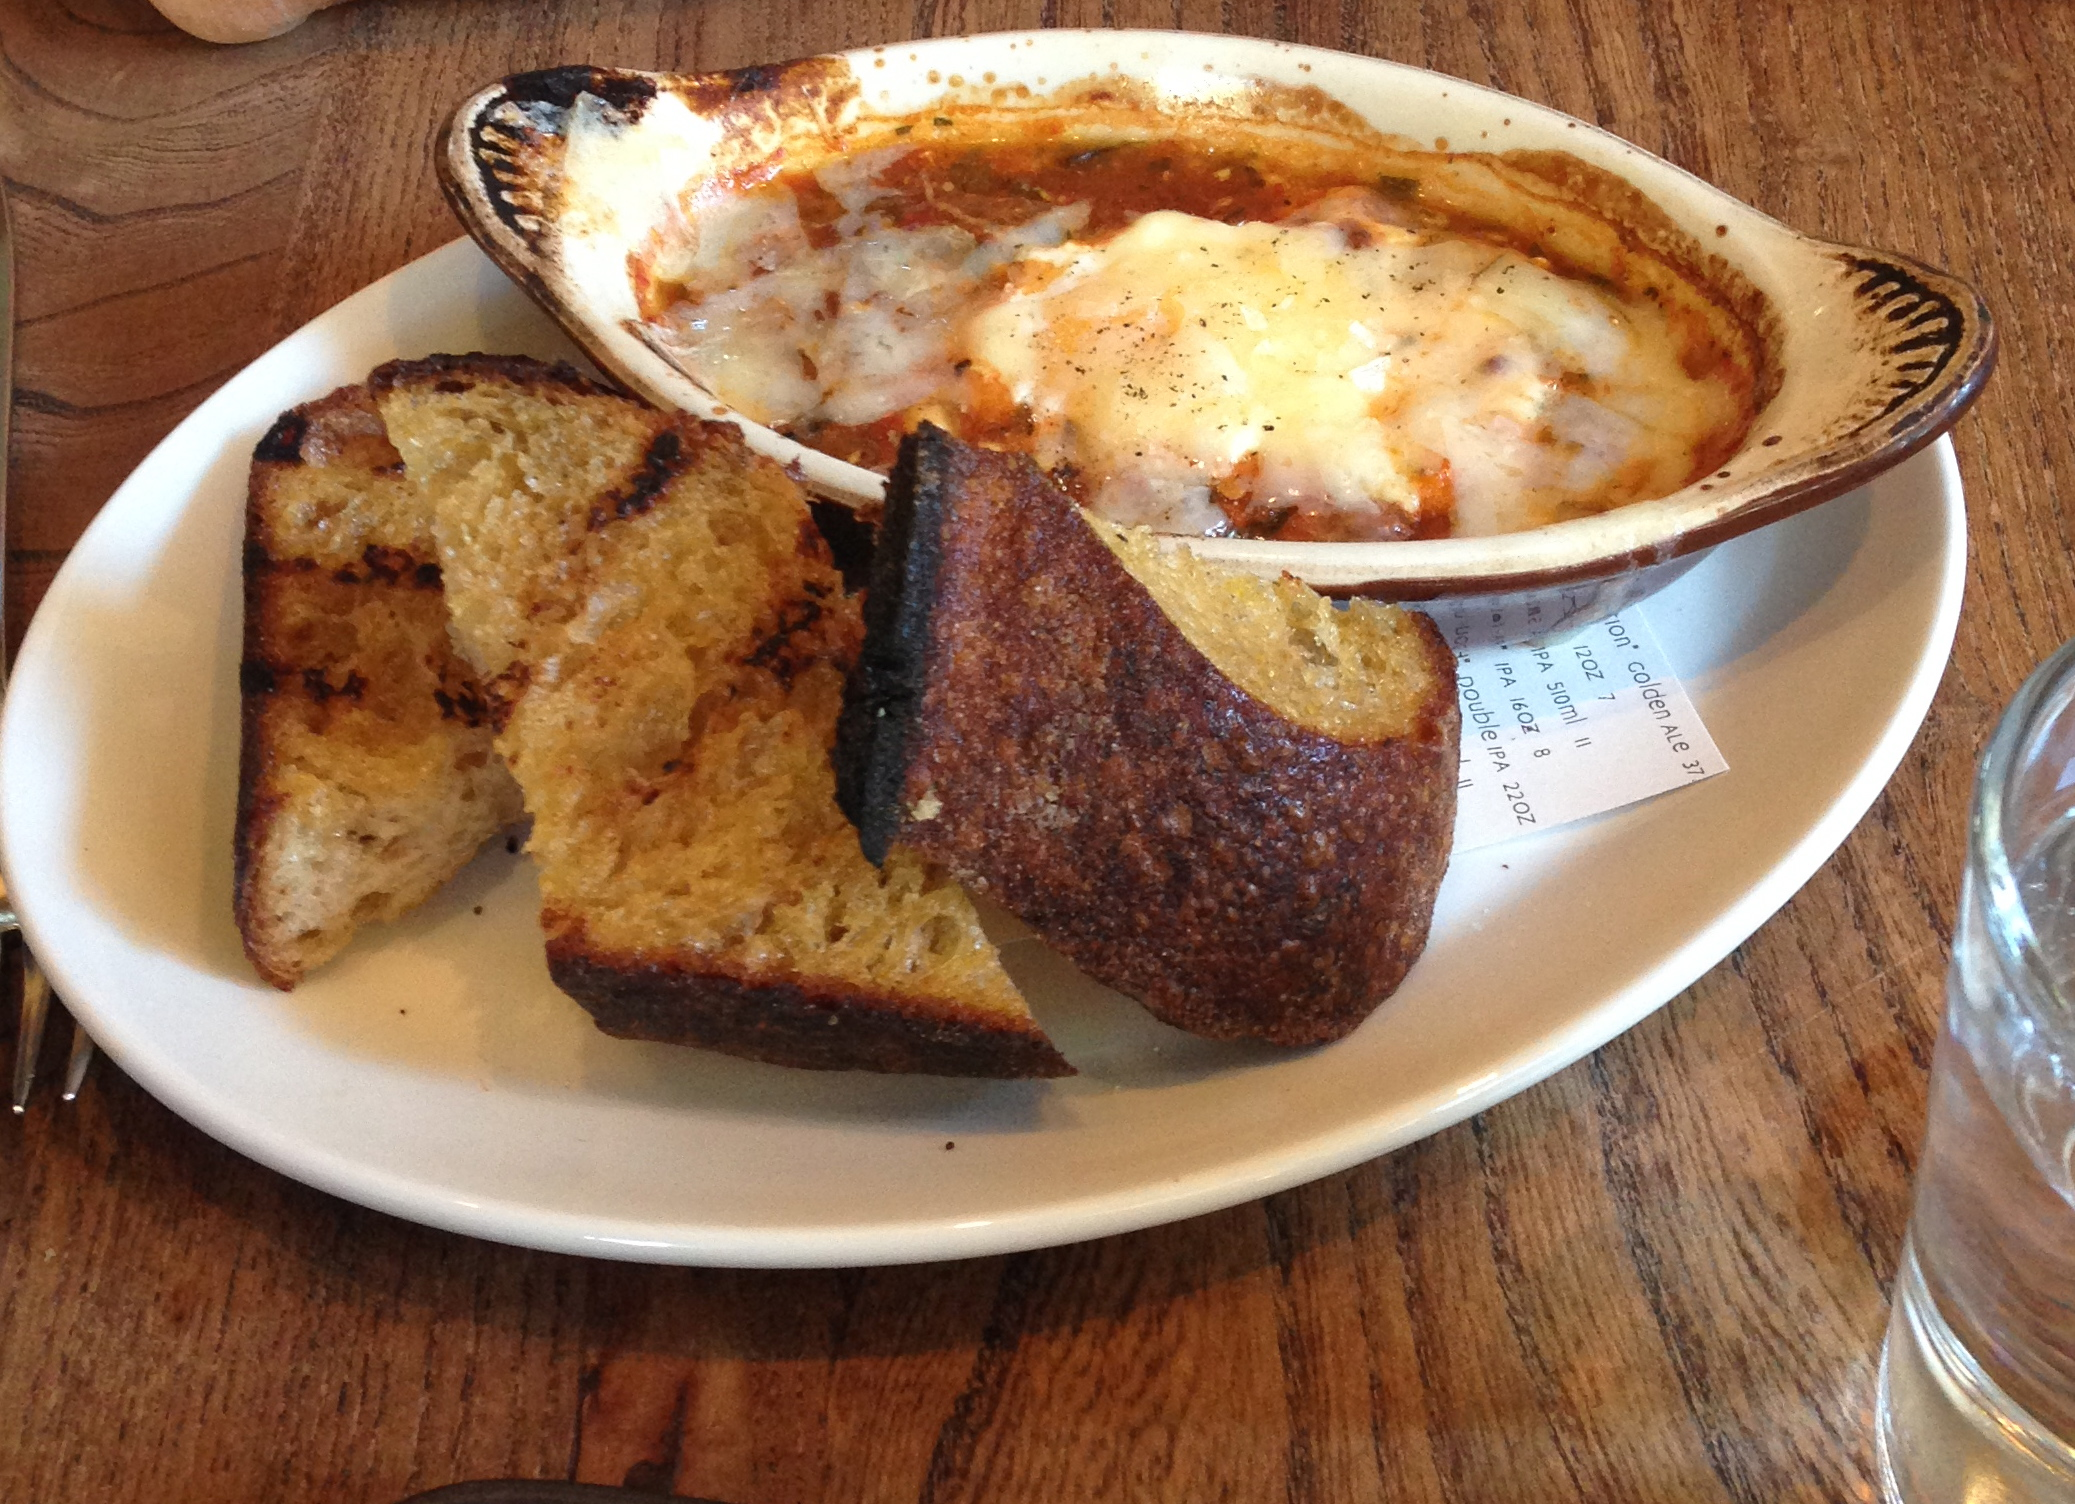 Oven Baked Egg – Roasted Corn, Tomatillos, Mezzo Secco and Toast